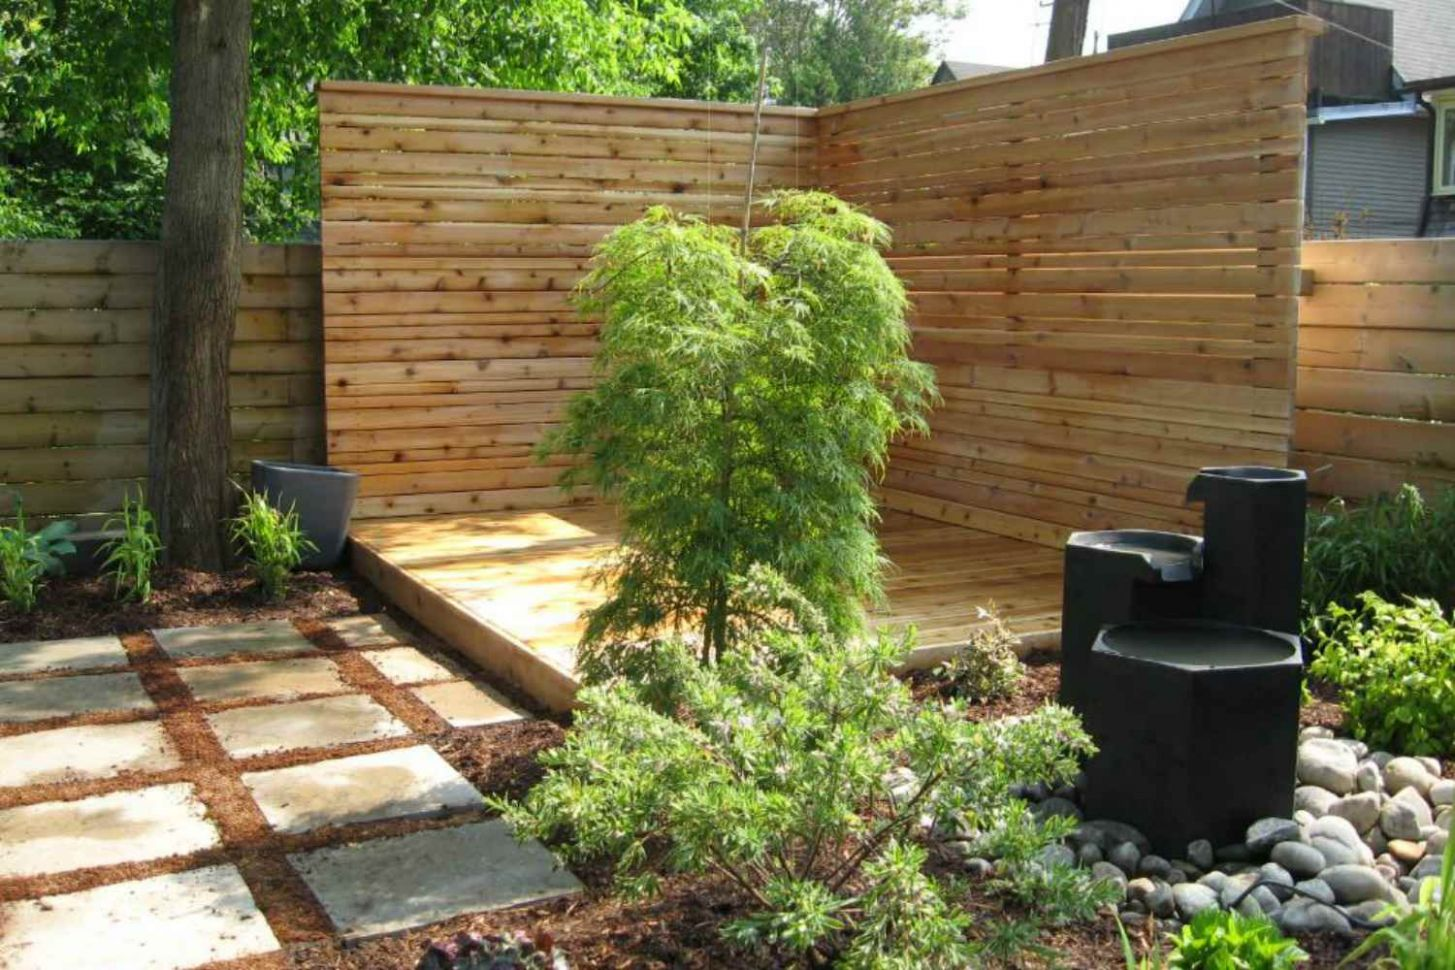 12 Landscaping Ideas for Creating Privacy in Your Yard